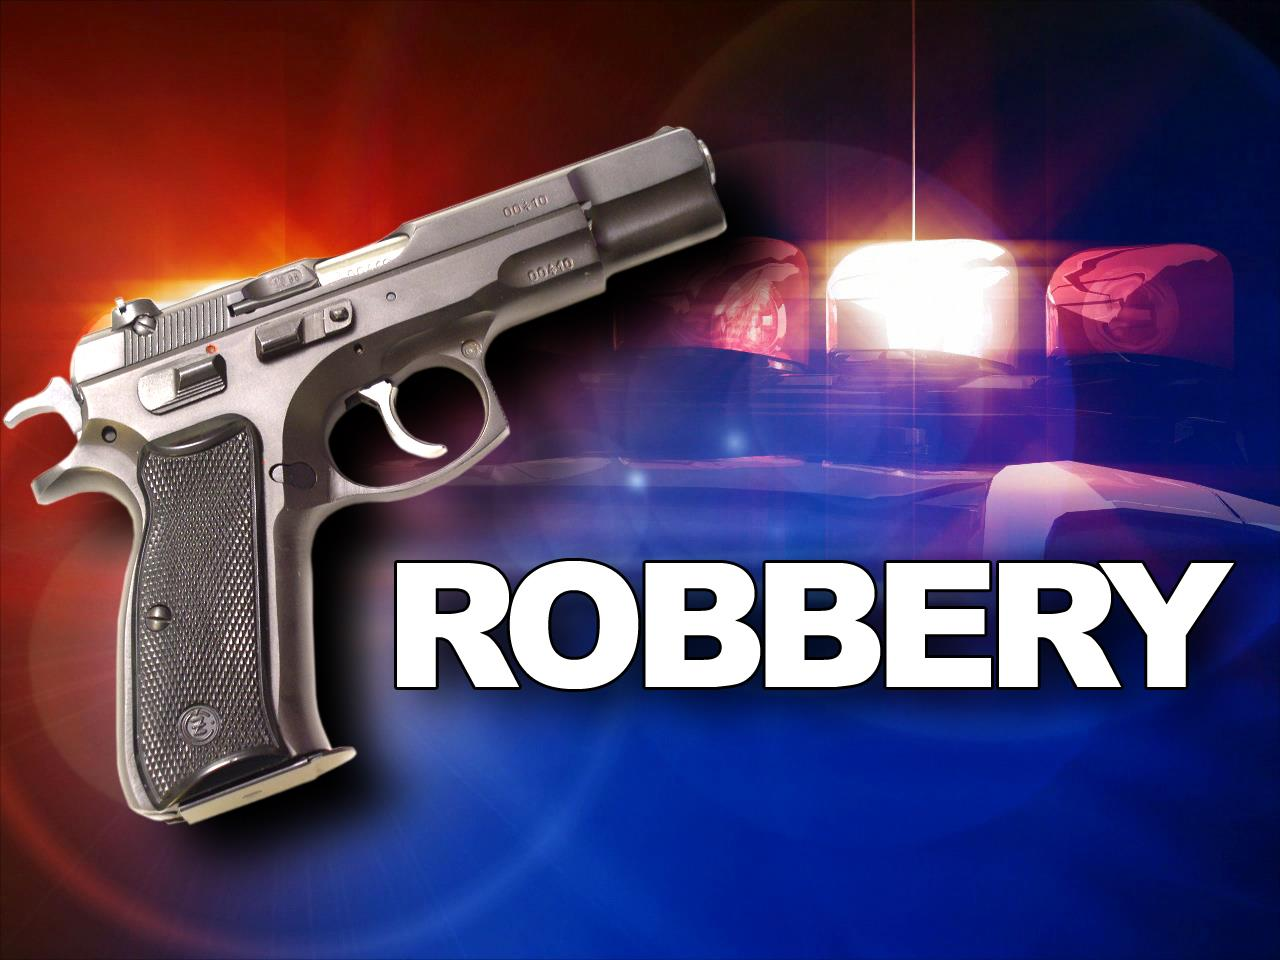 Armed Robbers Shoot At Police In Robbery, Take $50,000